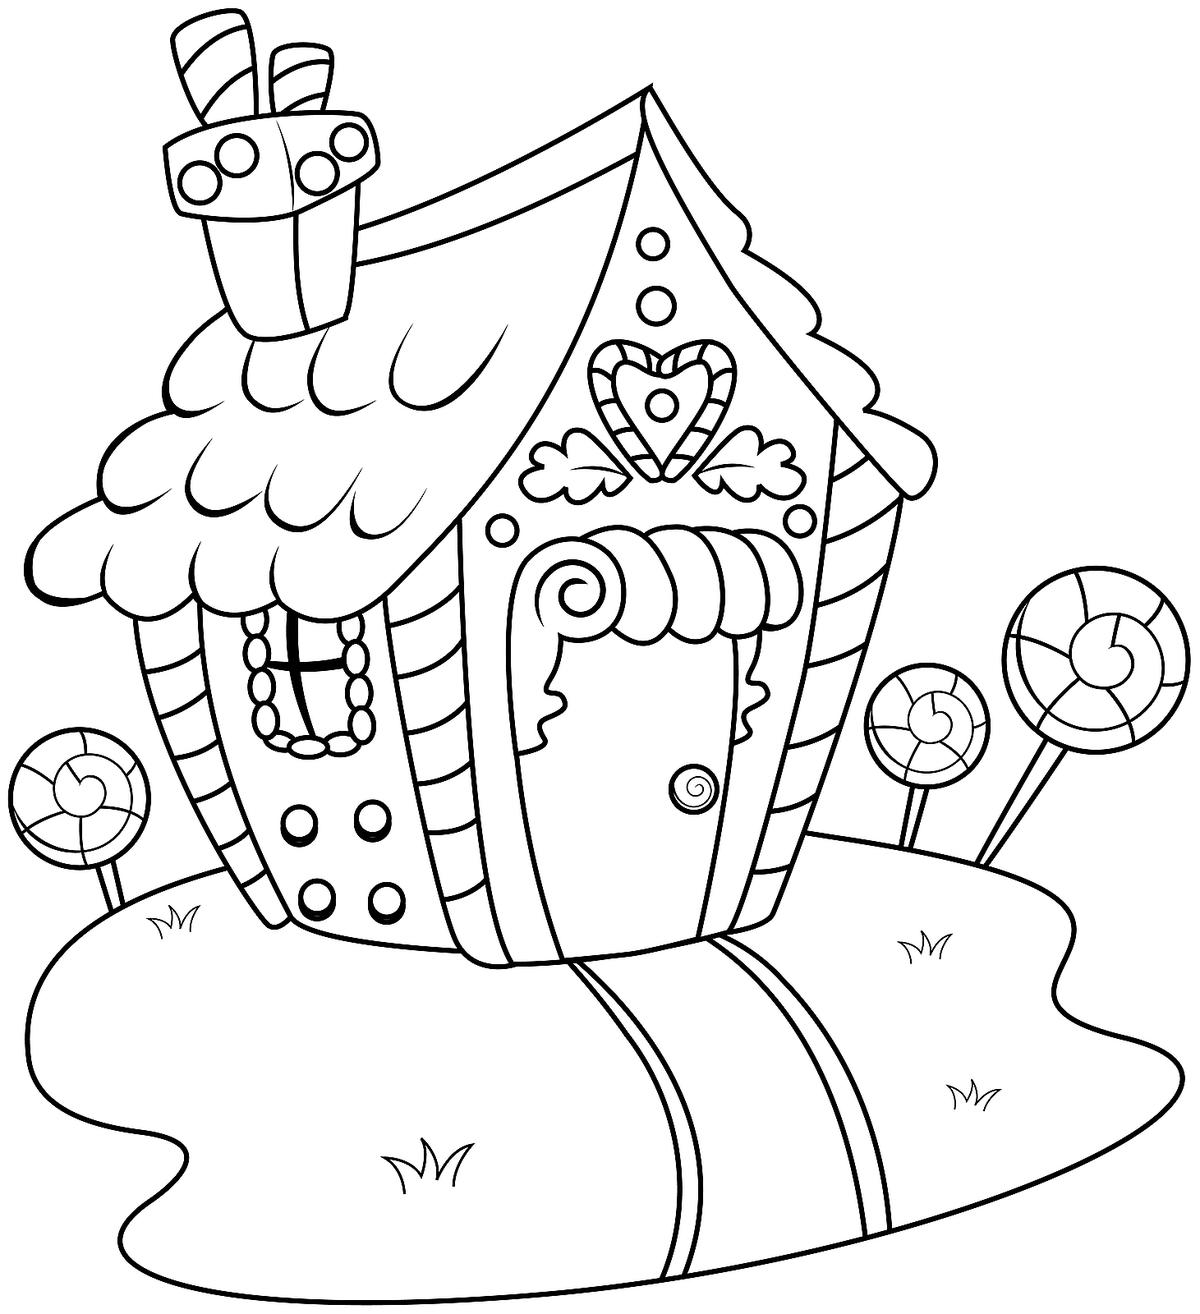 1200x1314 Gingerbread House Coloring Pages Printable Coloring, Activity